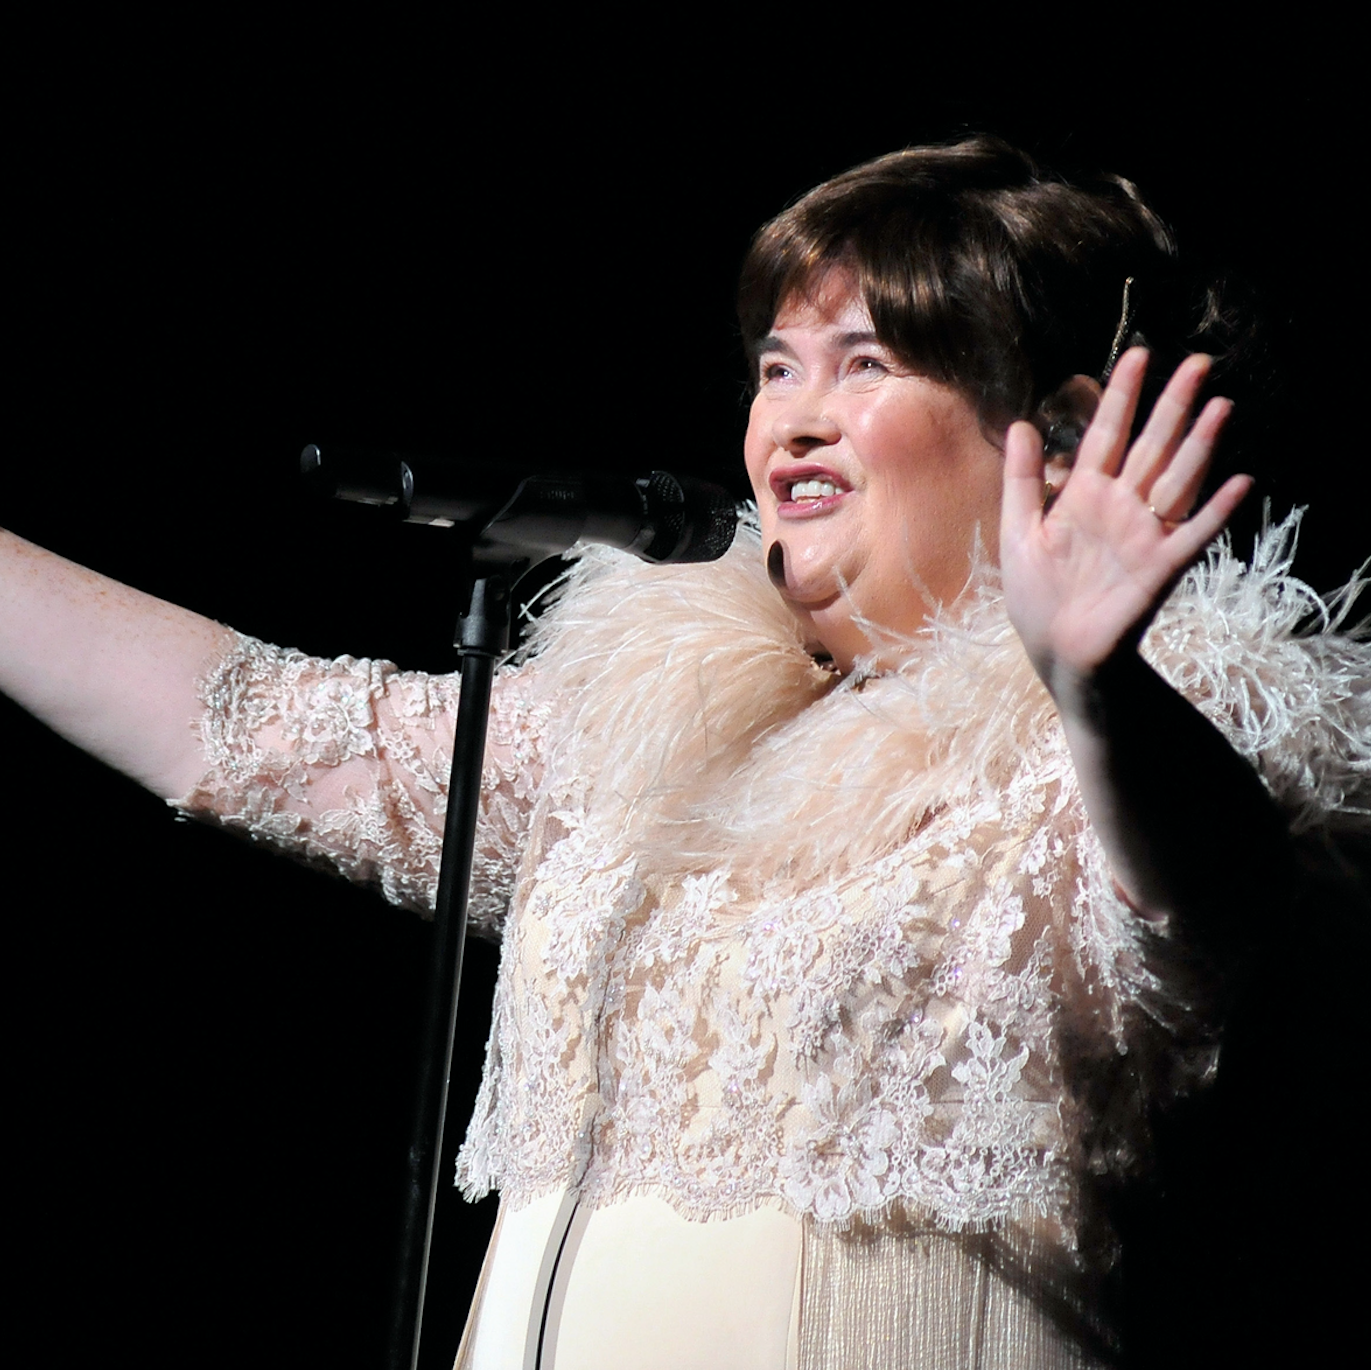 """Britain's Got Talent's Susan Boyle opens up about mental health and """"coping better"""" with pressures of fame"""